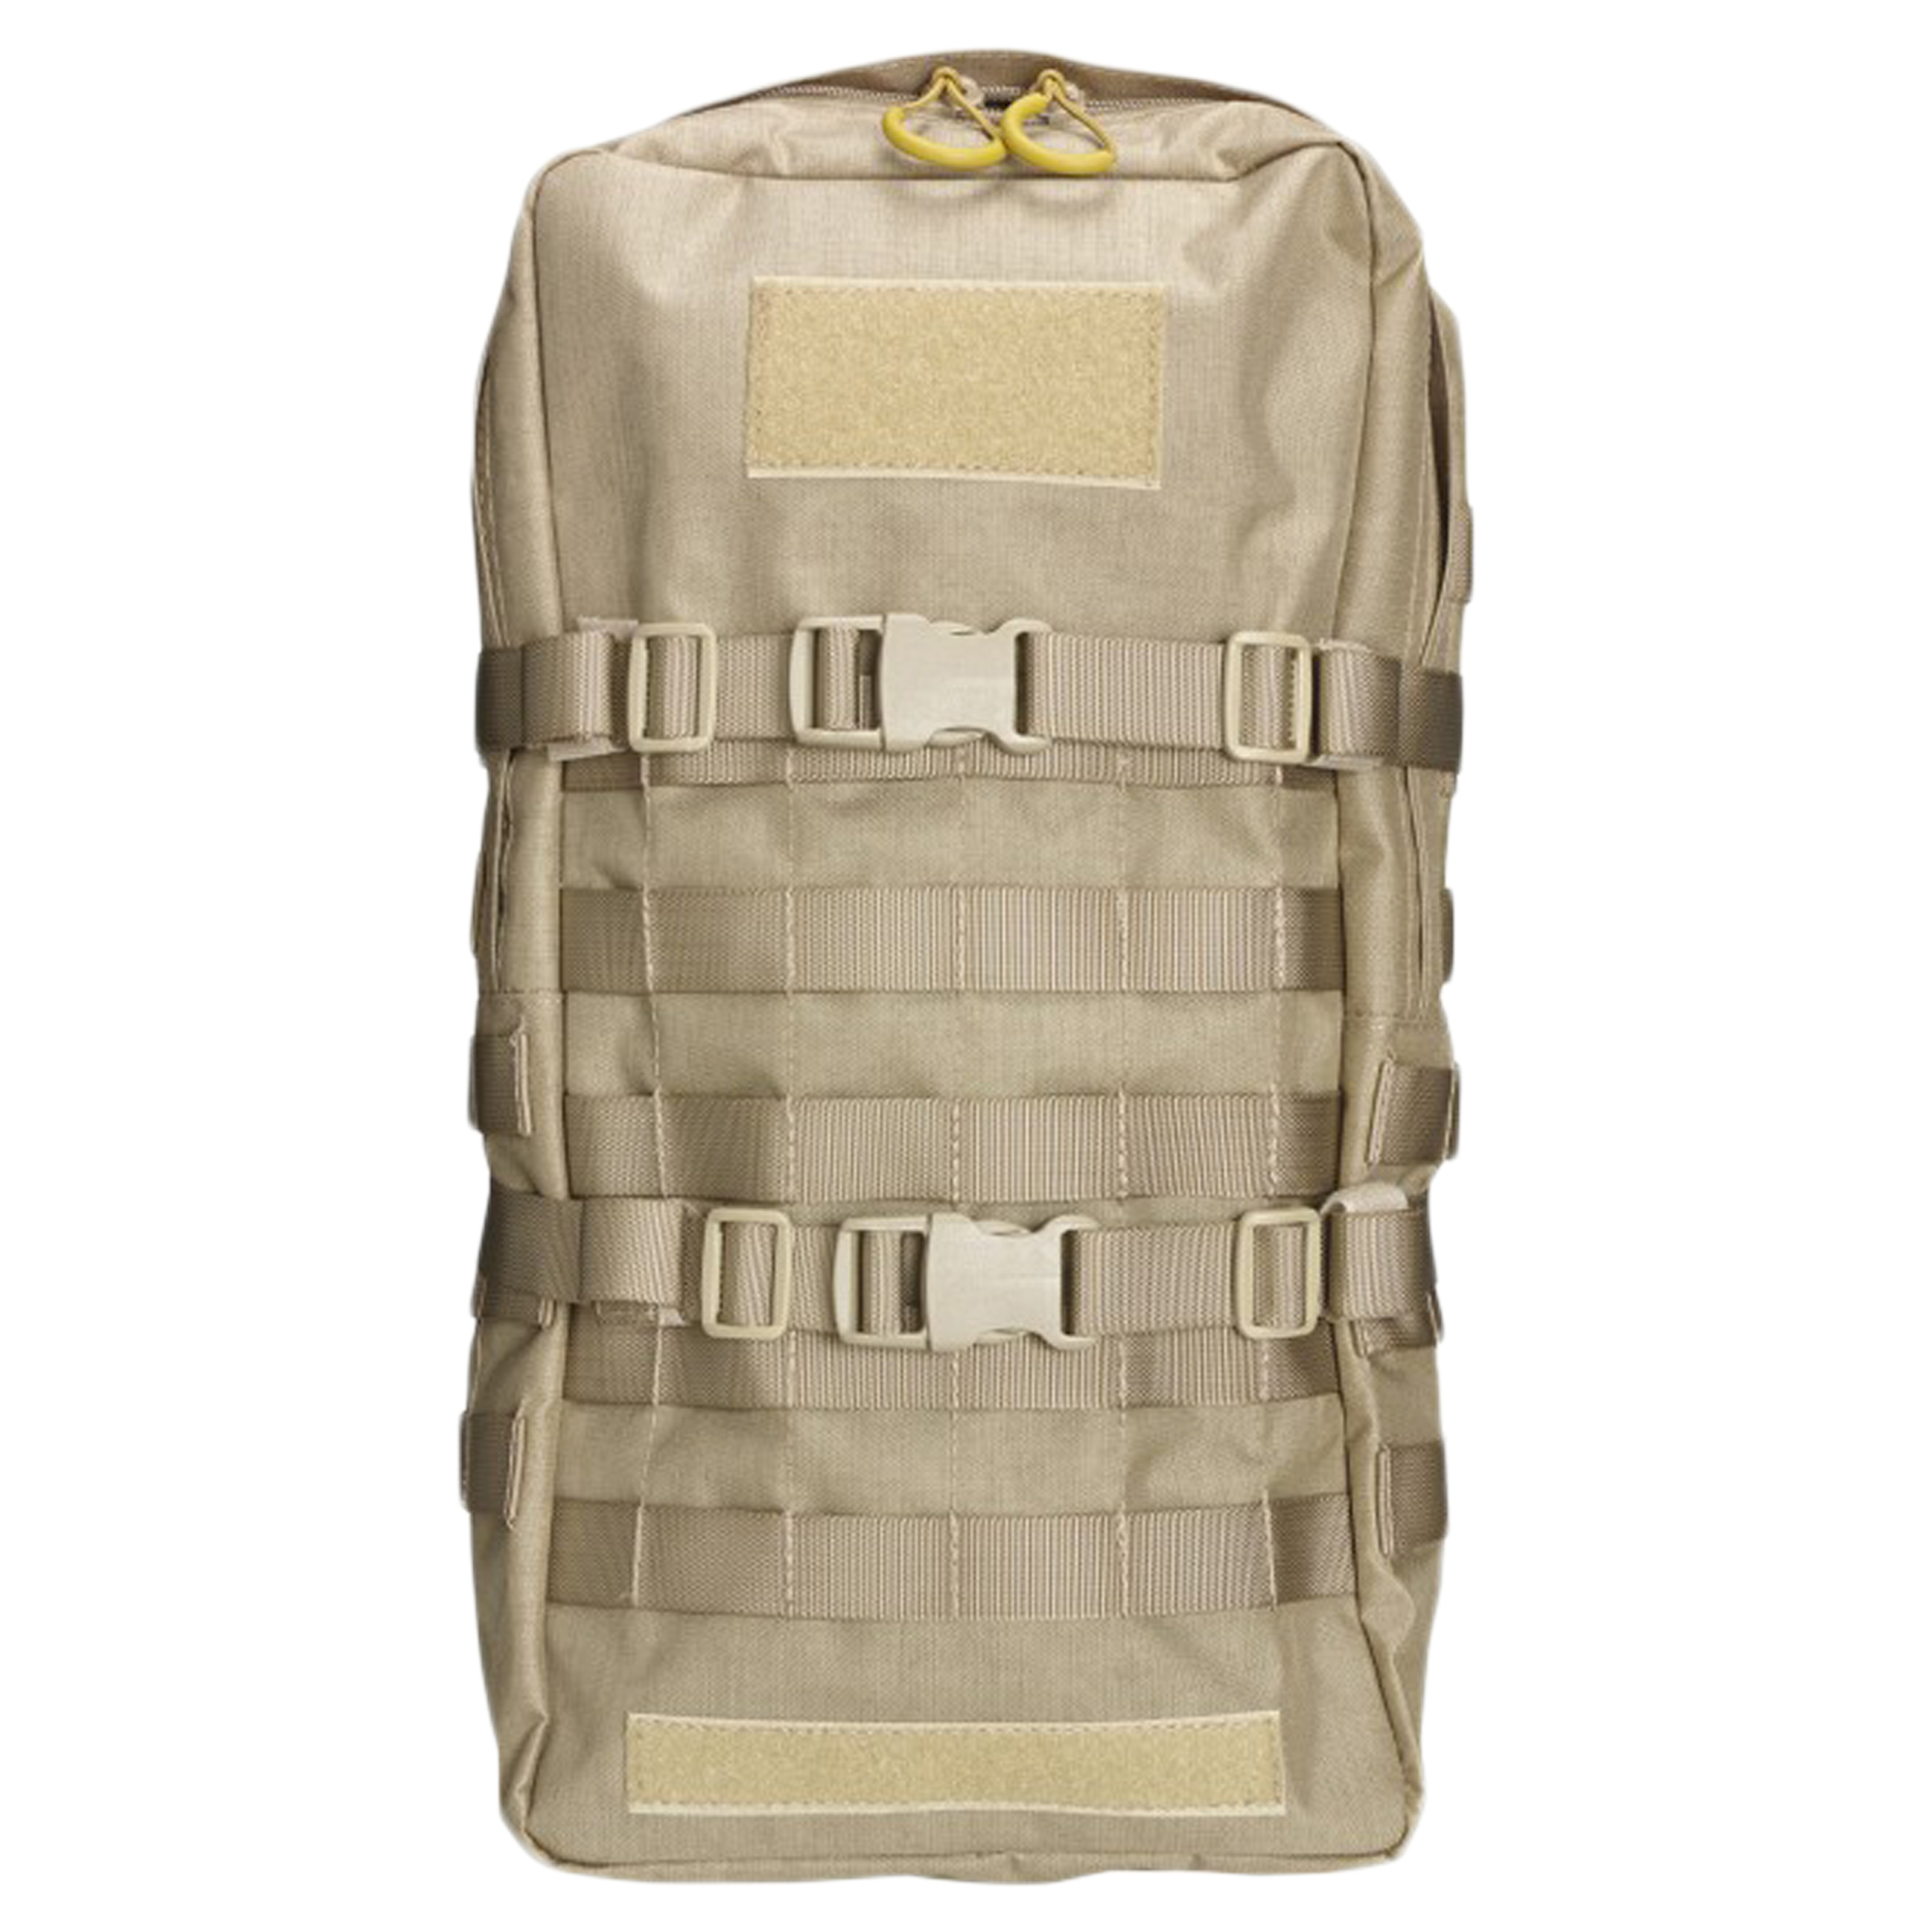 Zentauron Backpack Sprinter Pack sand